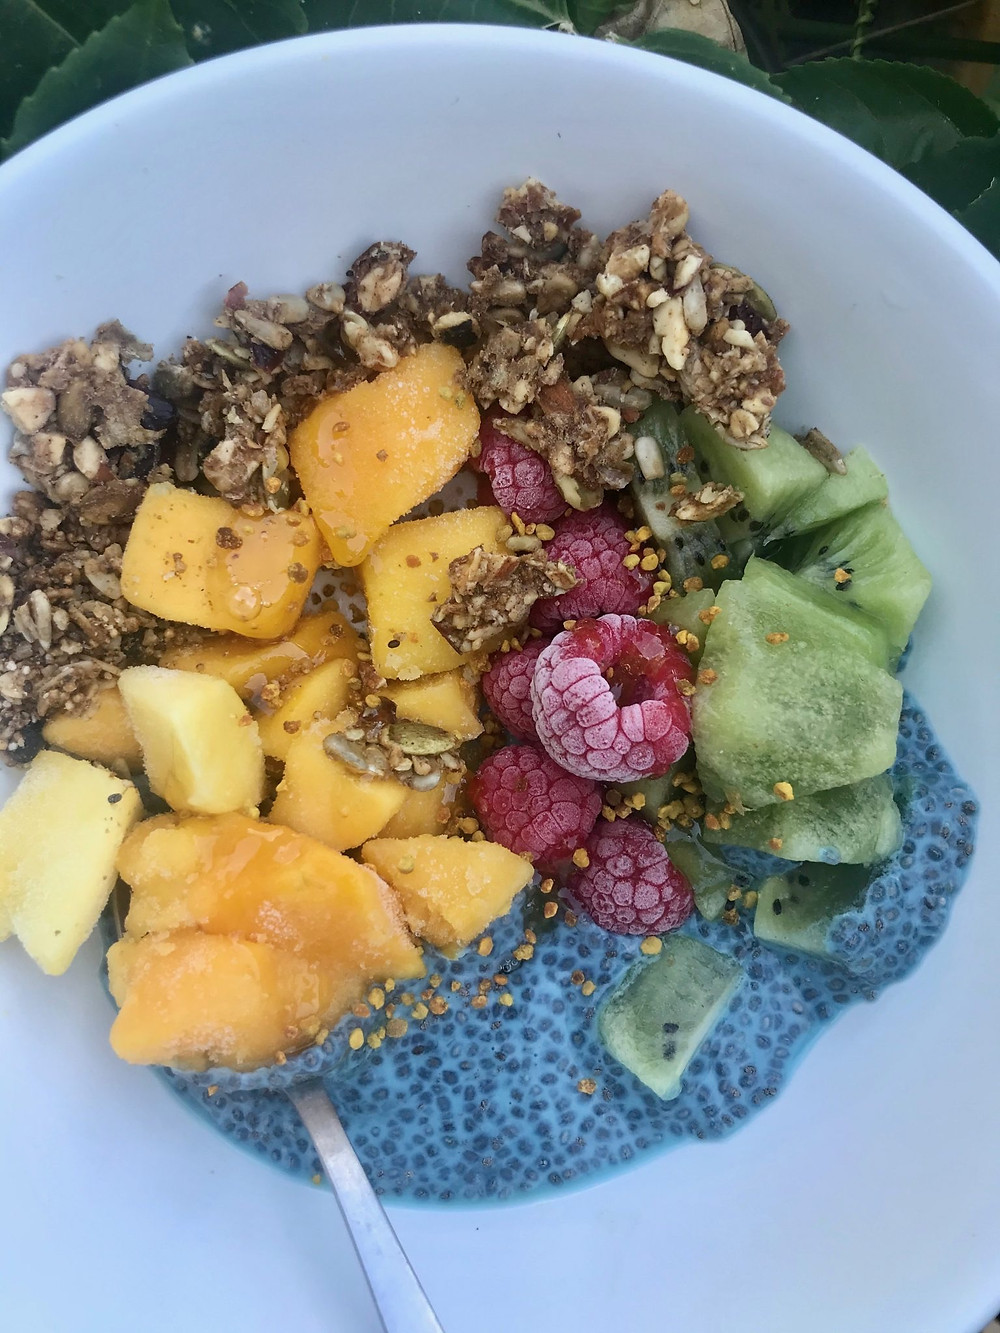 This beautiful Chia Bowl incorporates Irish Moss and tropical fruits to make it colorful and delicious.